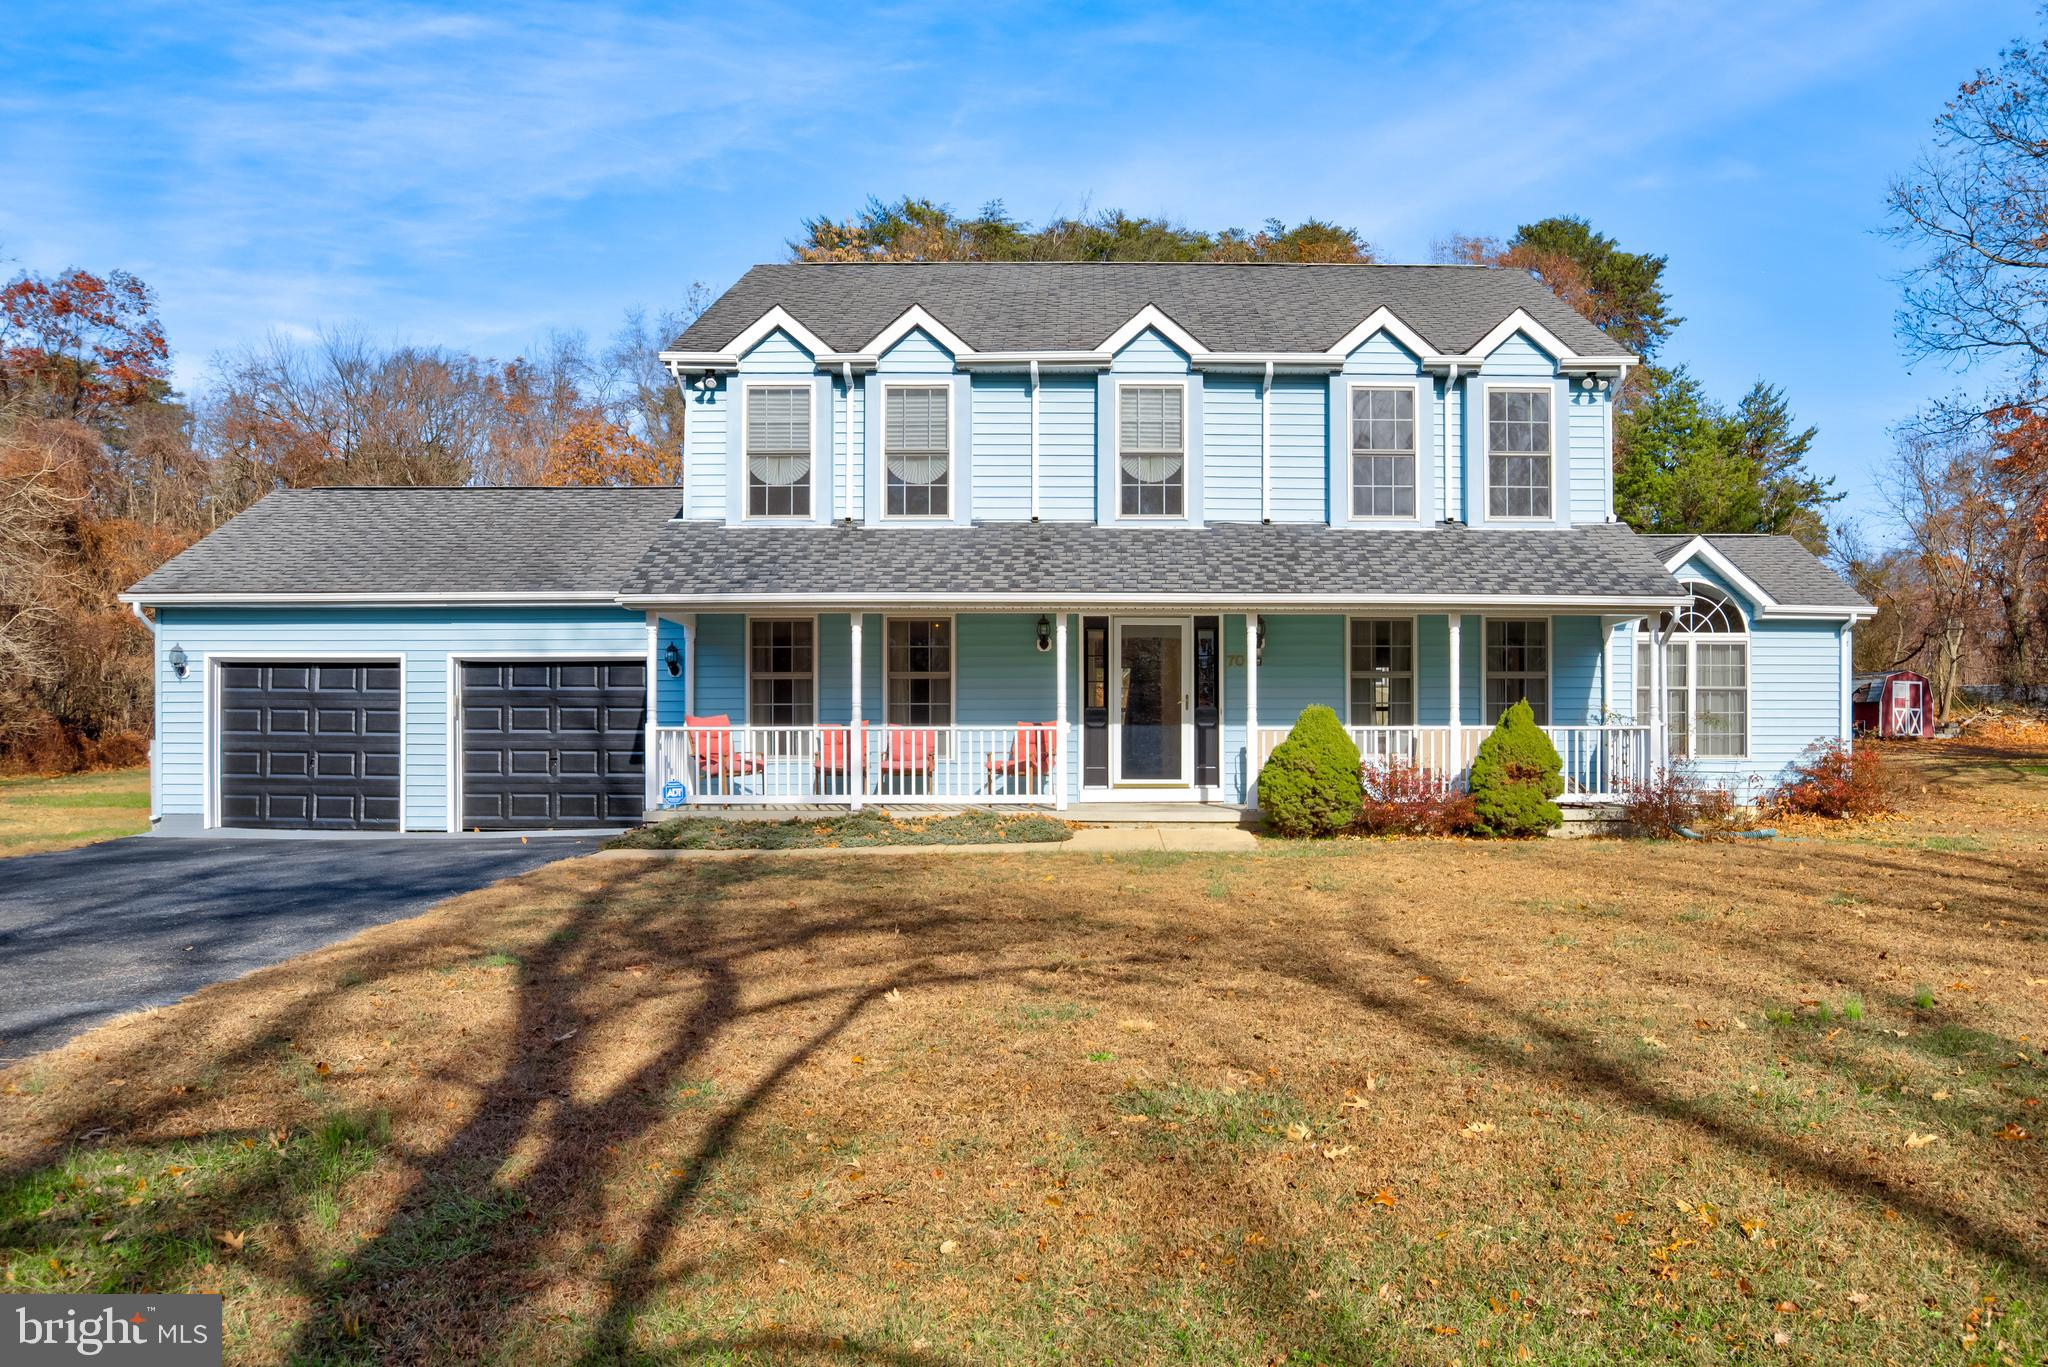 LOCATION, LOCATION, LOCATION! BEAUTIFUL SEVERNA PARK COLONIAL THAT OFFERS 5 BEDROOMS, 3.5 BATHS, 3